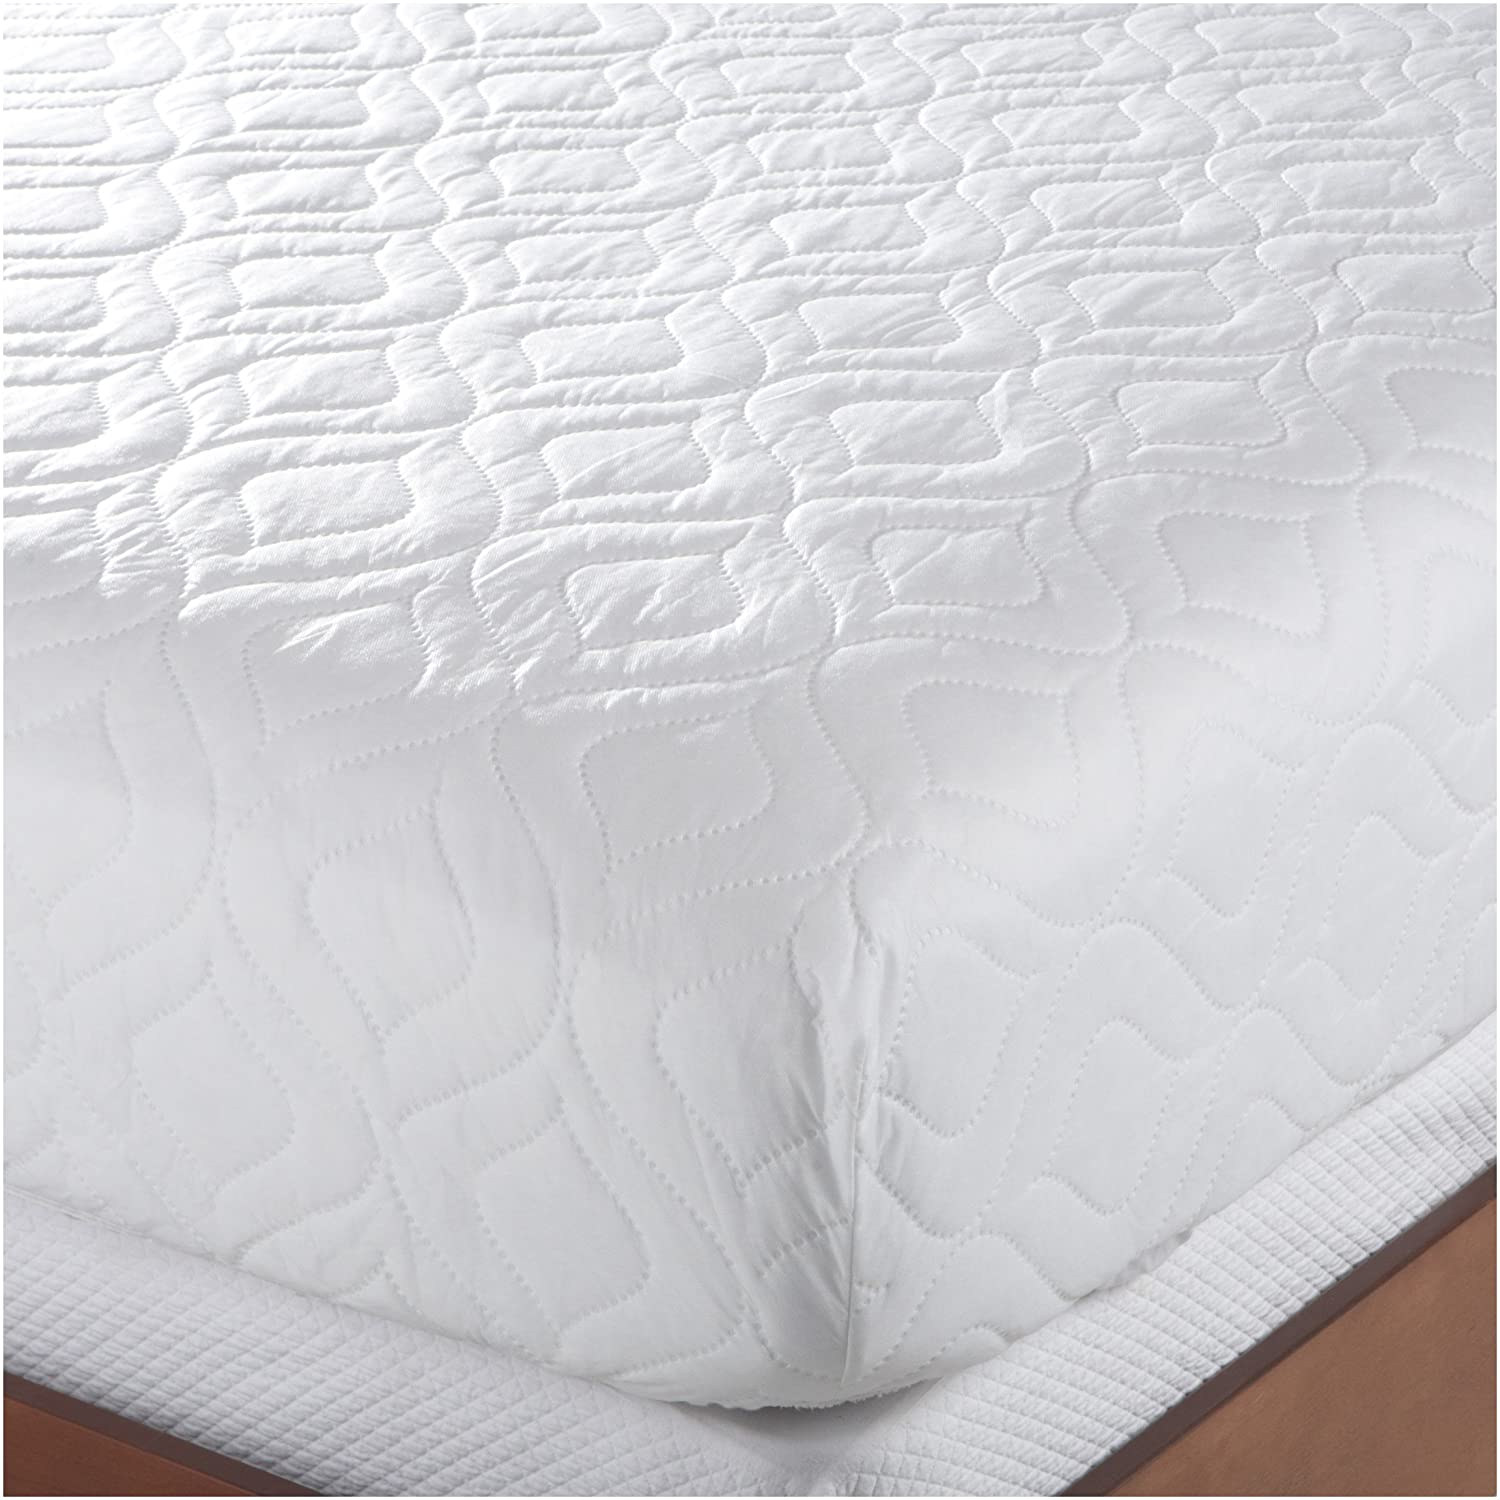 dp pad sleep pillow damask mattress kitchen down with fill queen alternative quilted com amazon bel and cover tite malouf home topper